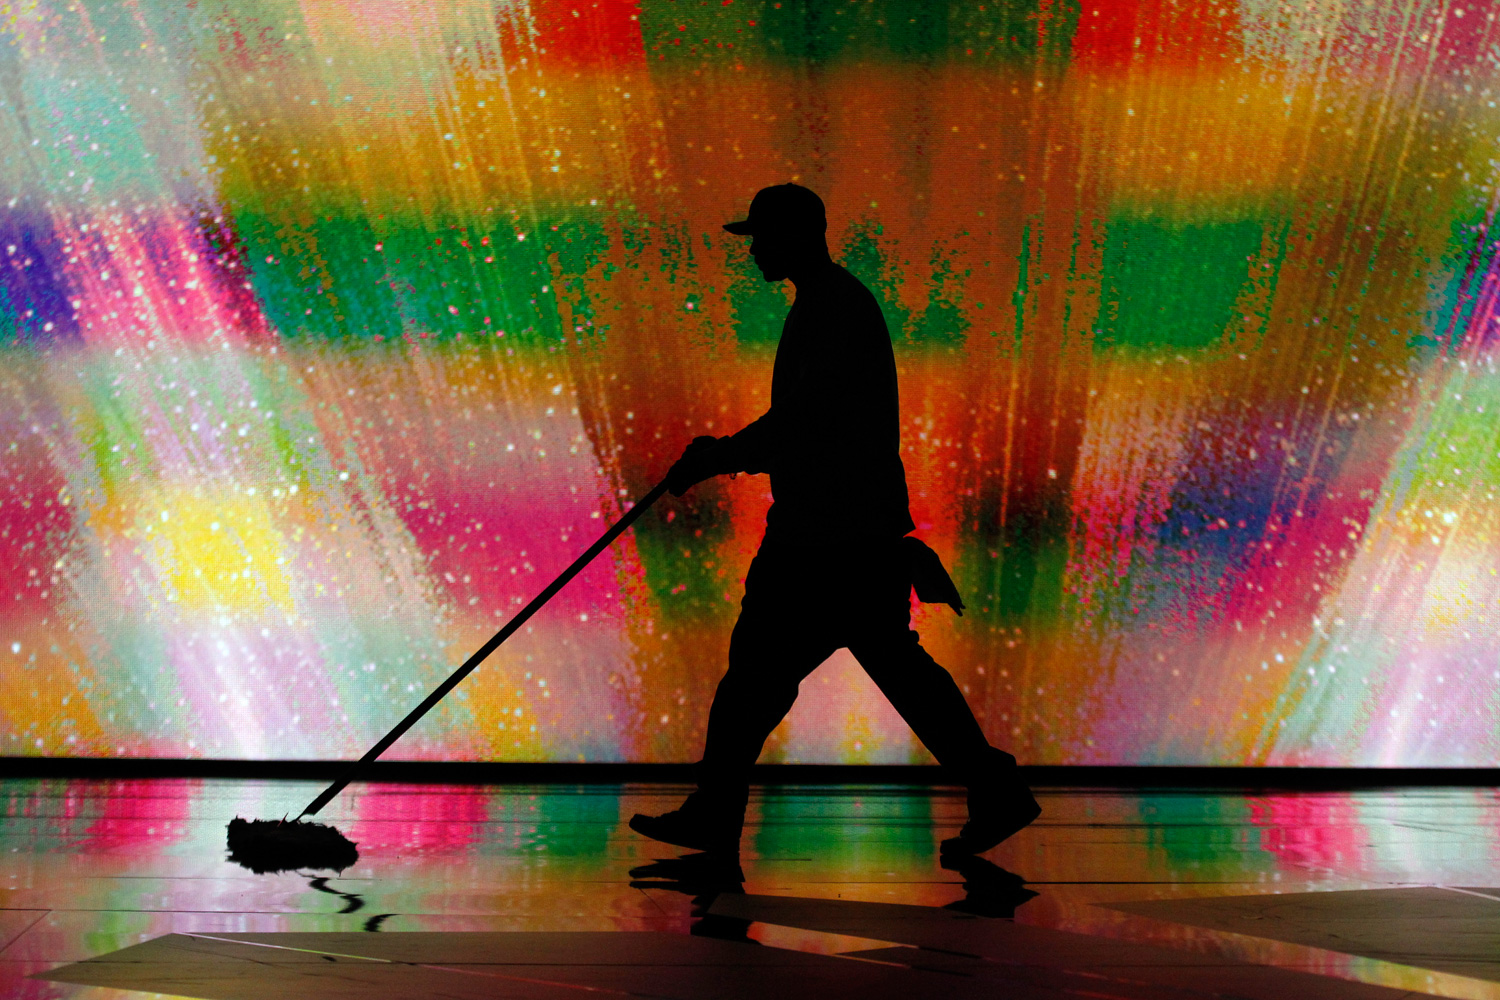 Feb. 25, 2012. A stage hands cleans the floor during rehearsals for 84th Academy Awards.